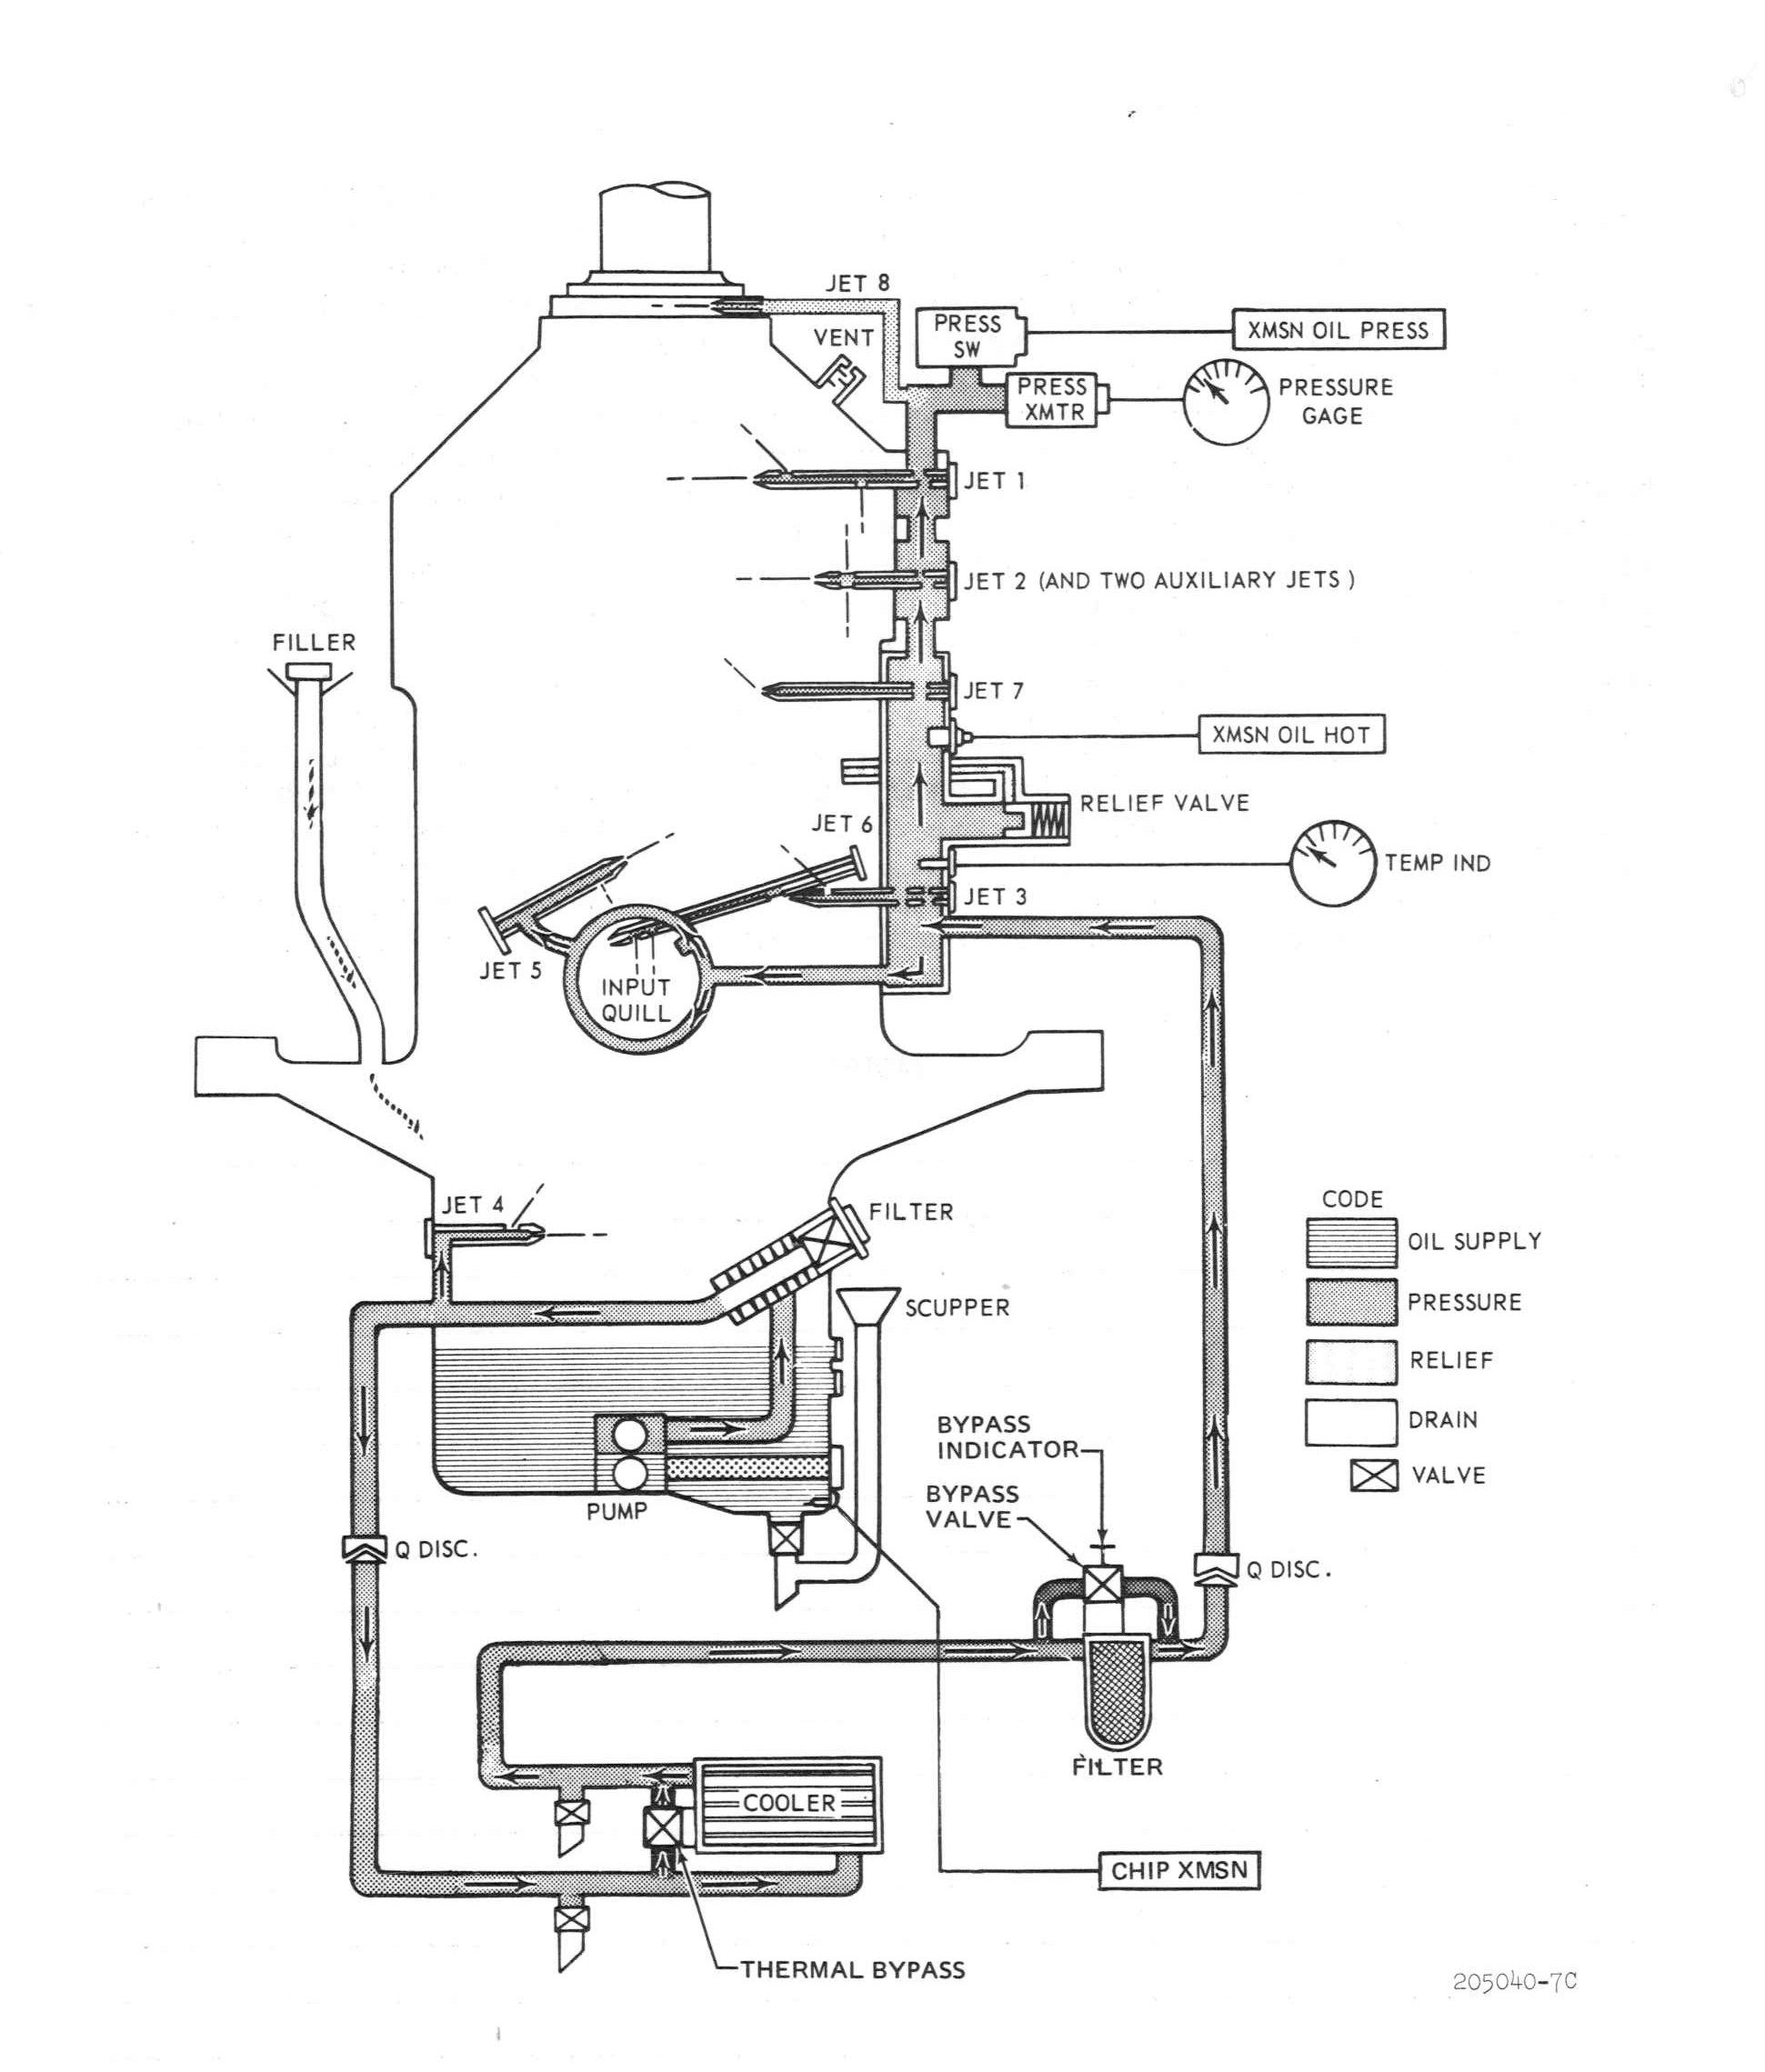 Bell 206 Wiring Diagram